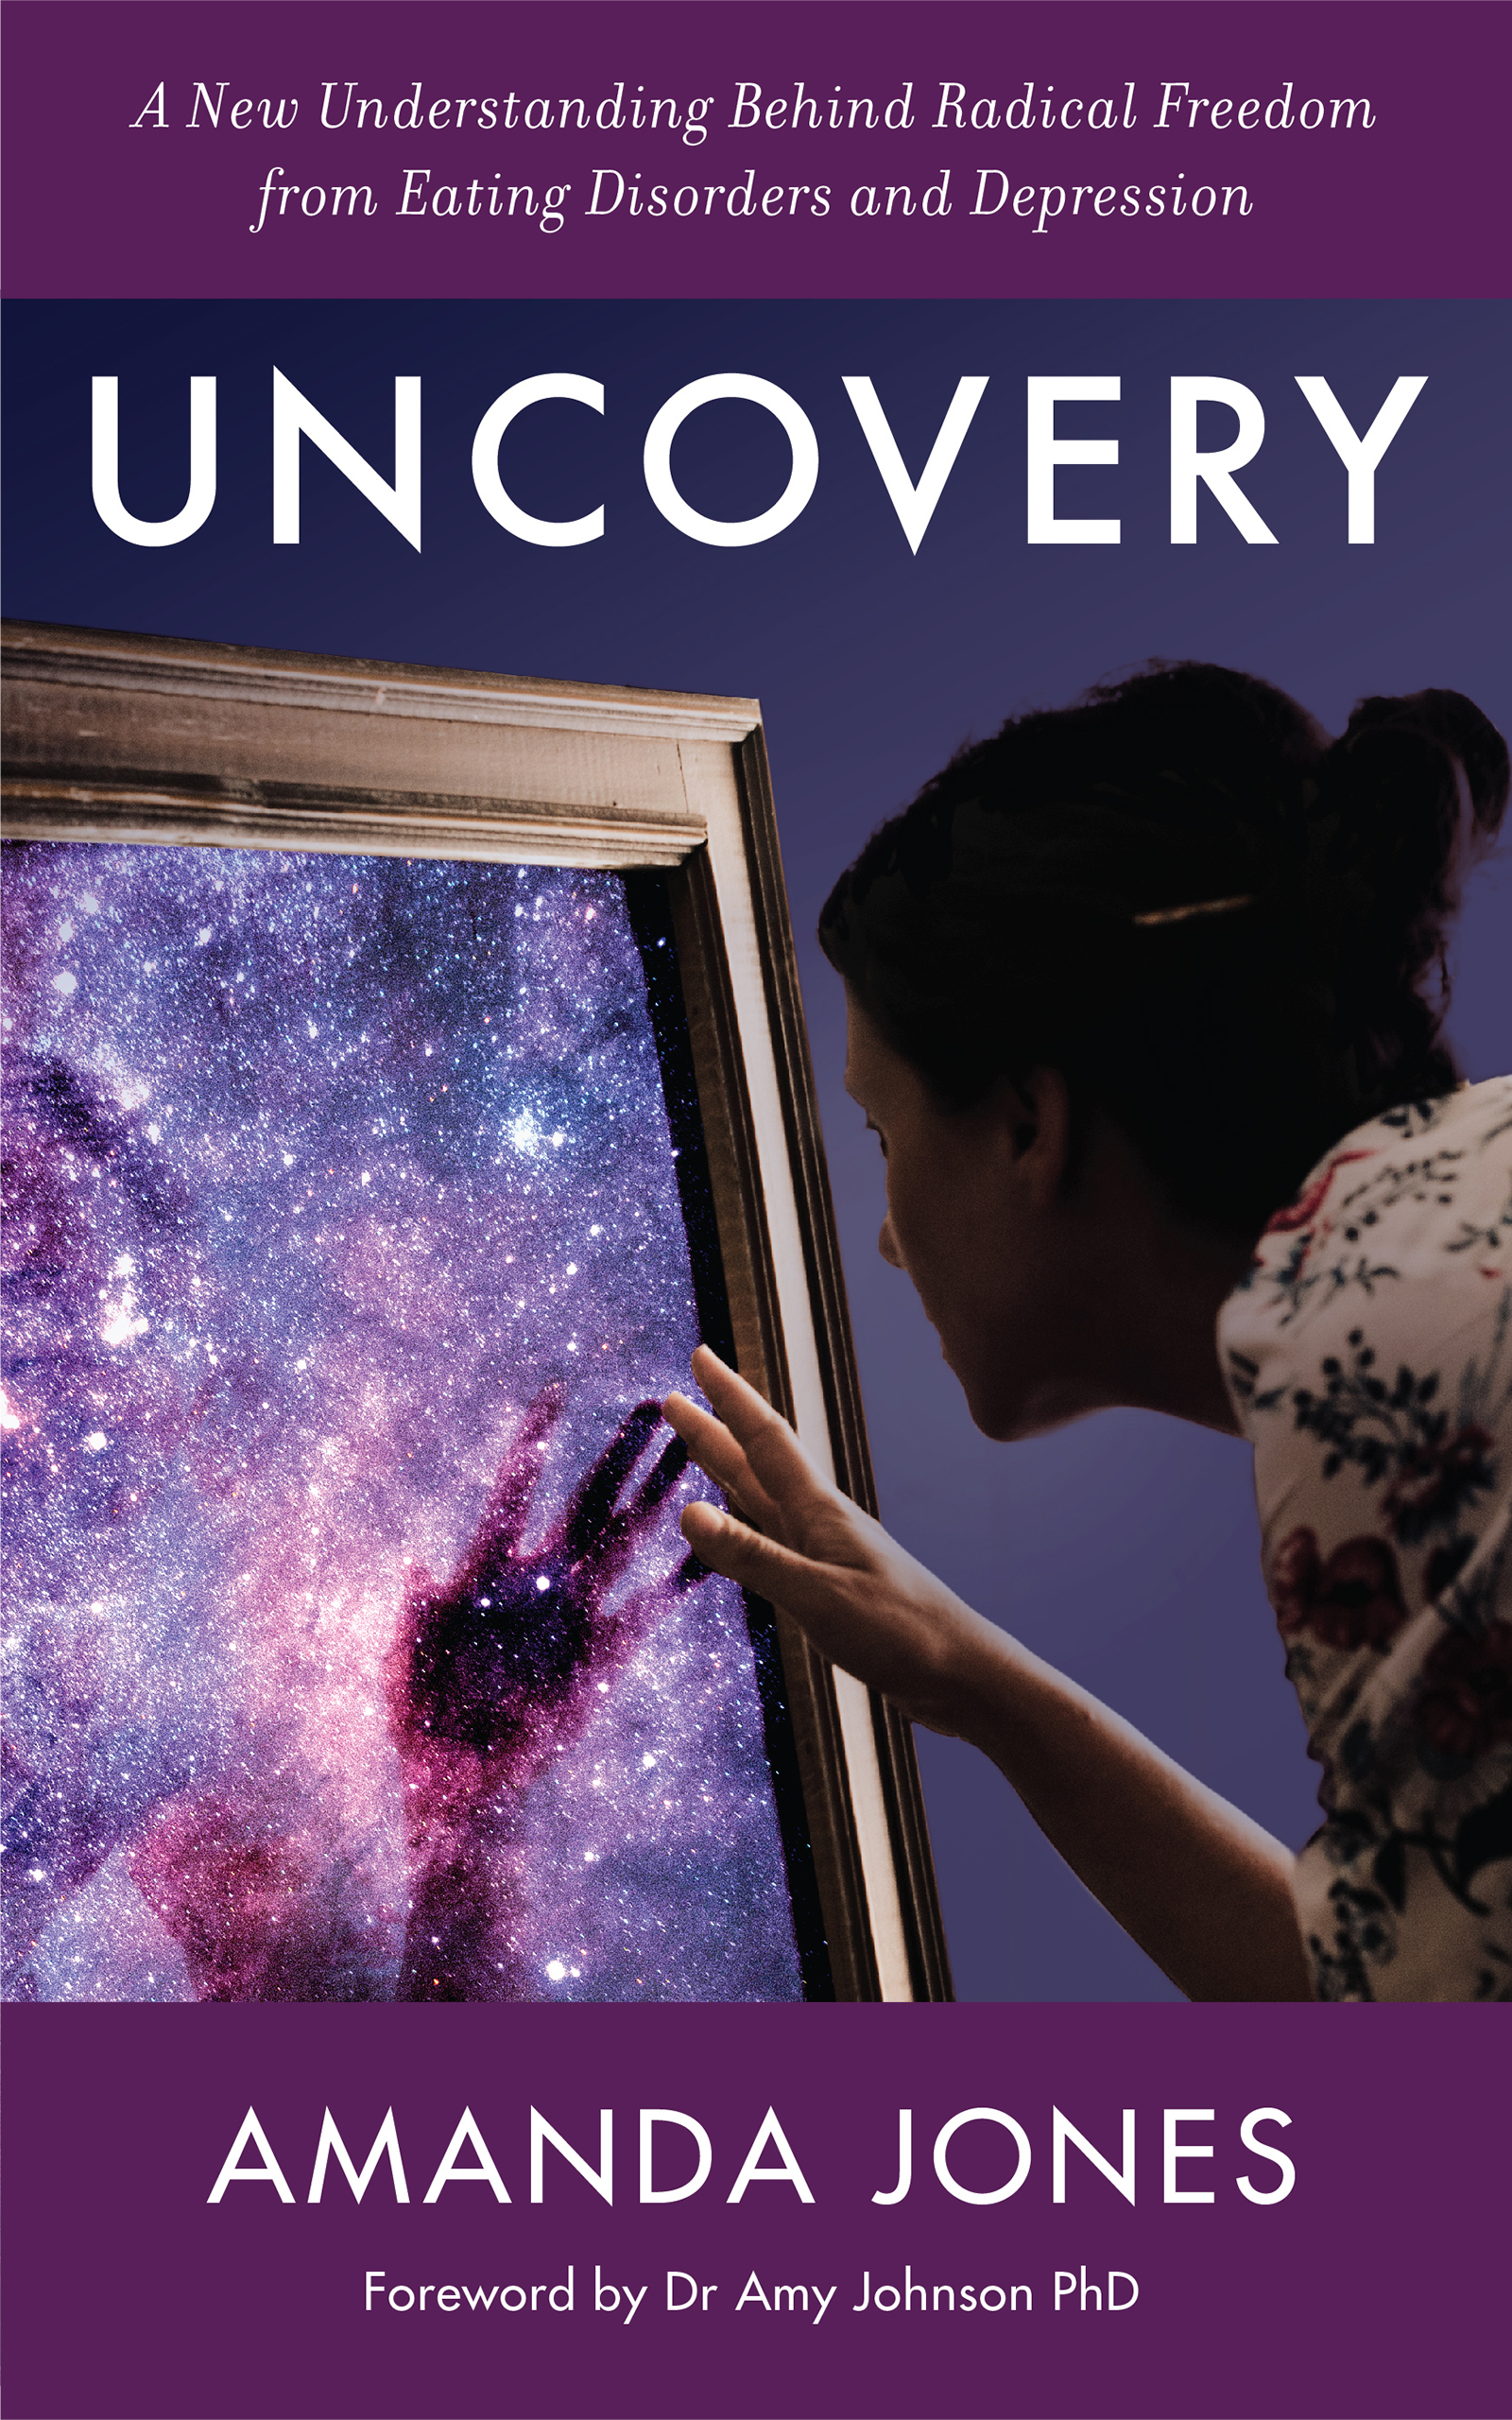 Uncovery_ebook cover_2560x1600.jpeg